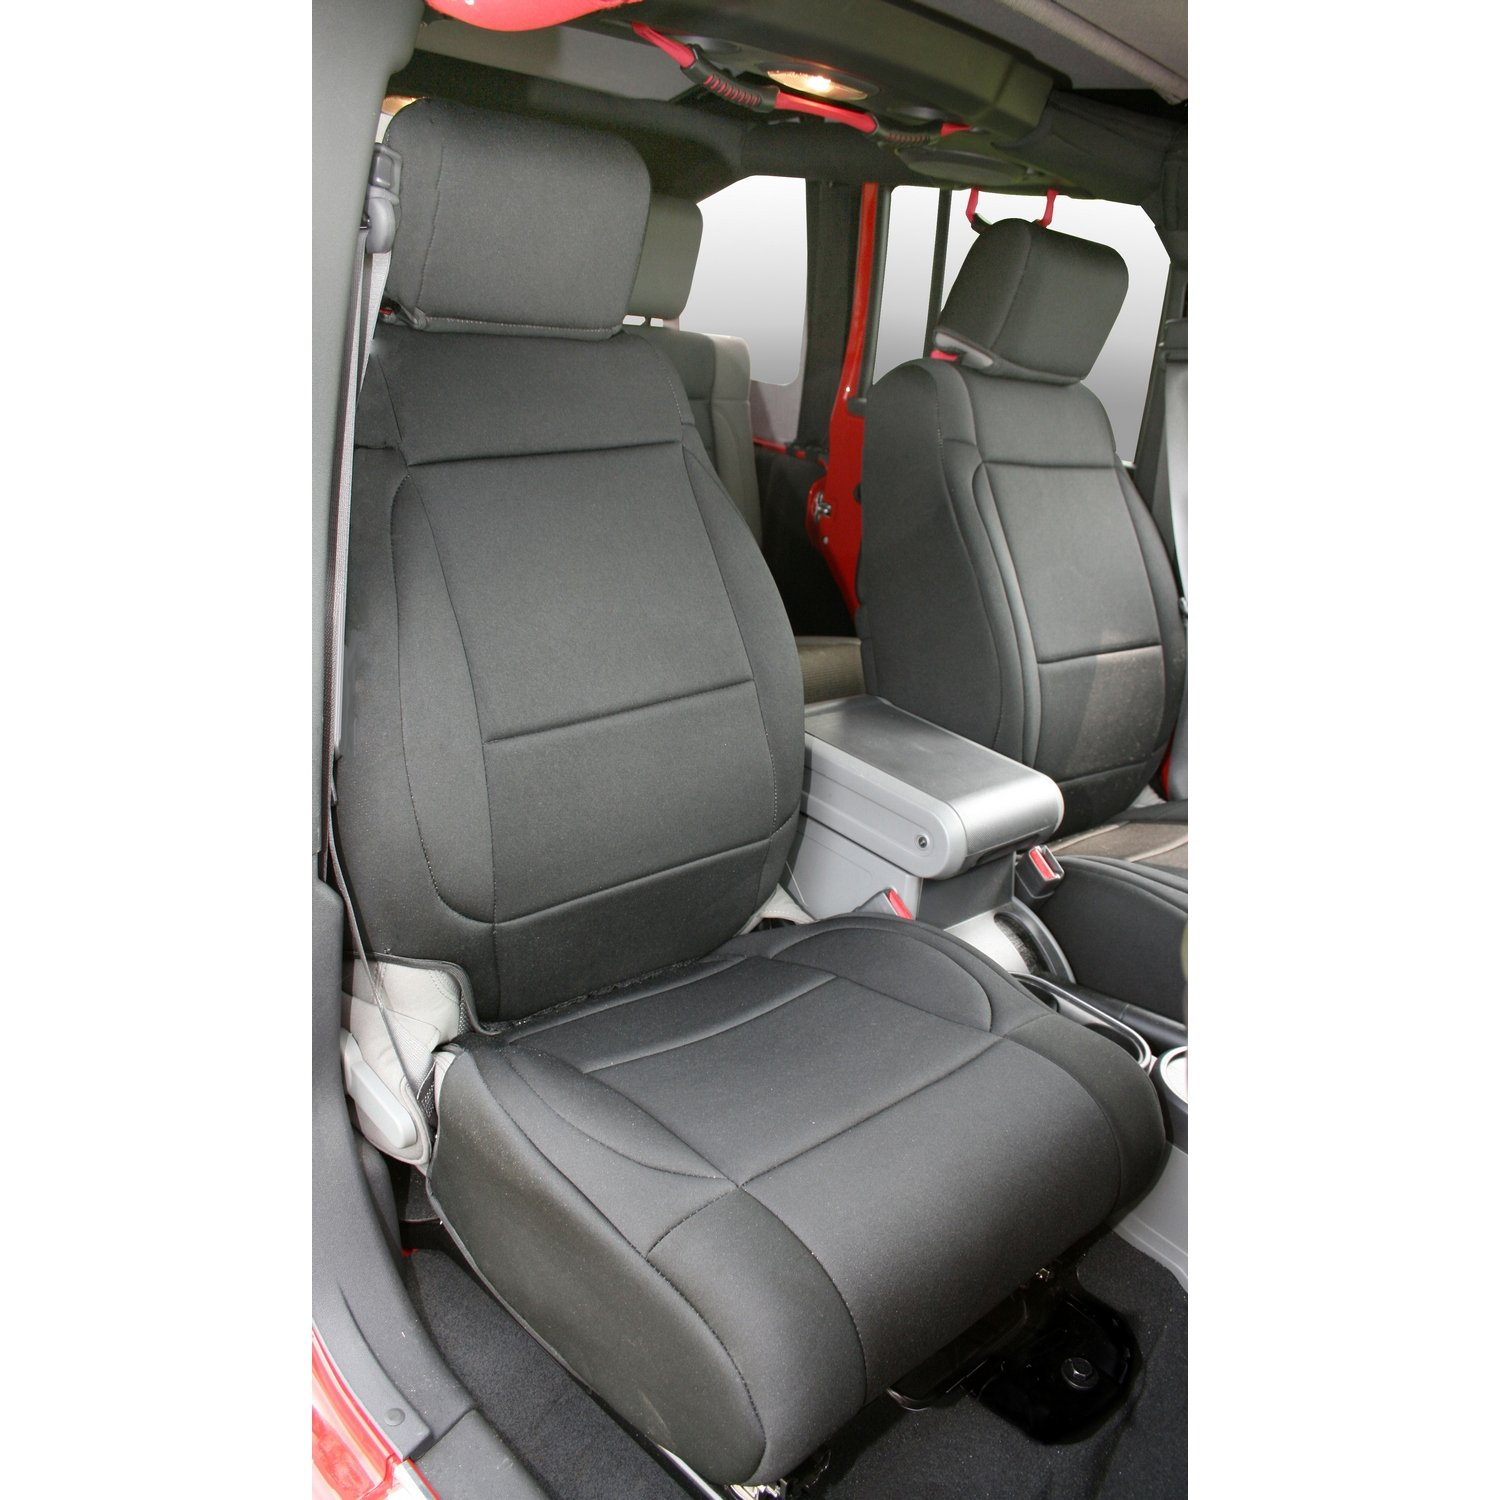 Rugged Ridge 13214.01 Black Custom Neoprene Front Seat Cover - Pair by Rugged Ridge